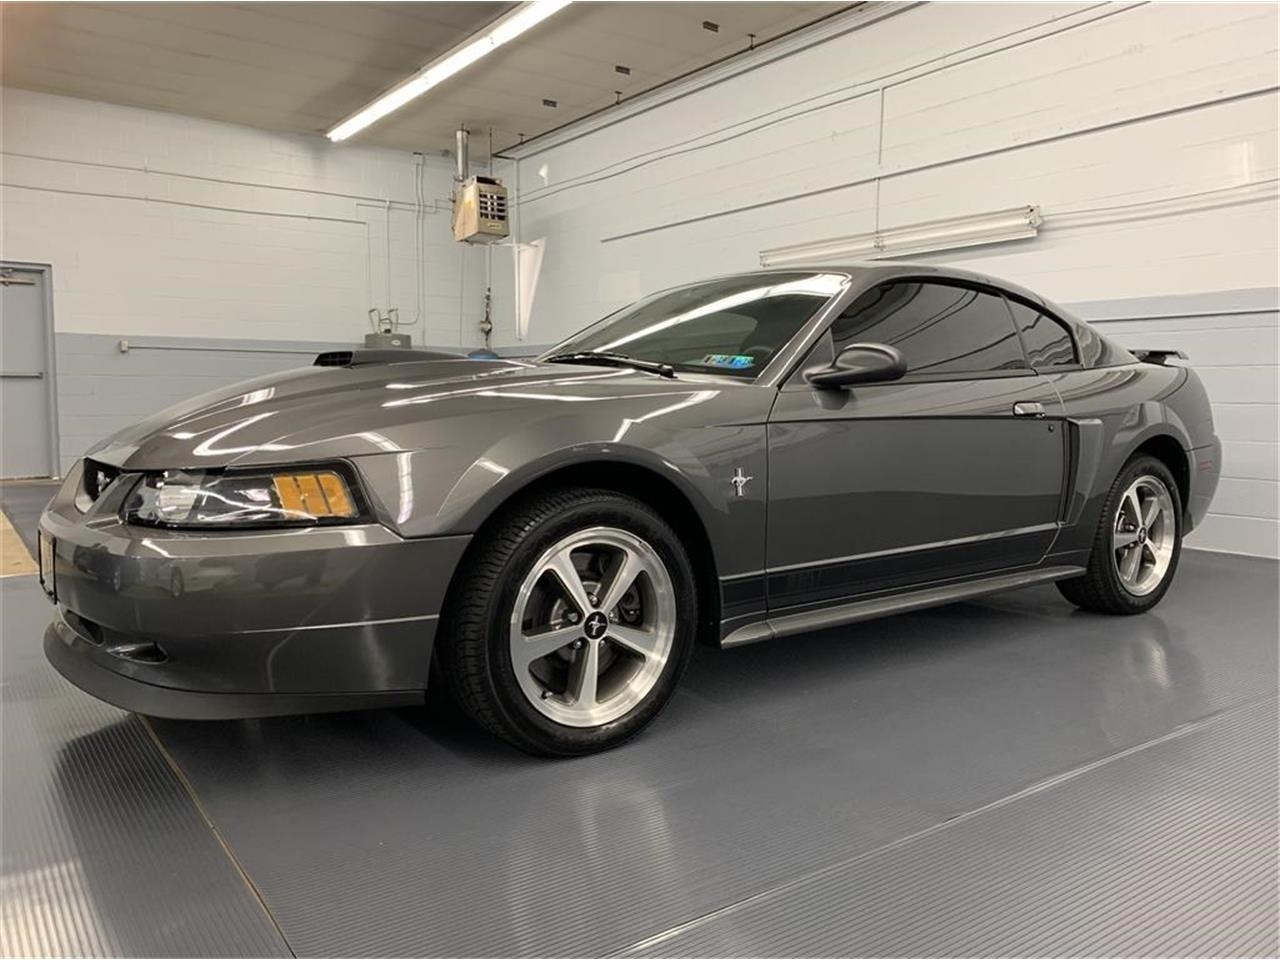 2003 Ford Mustang (CC-1294153) for sale in Manheim, Pennsylvania